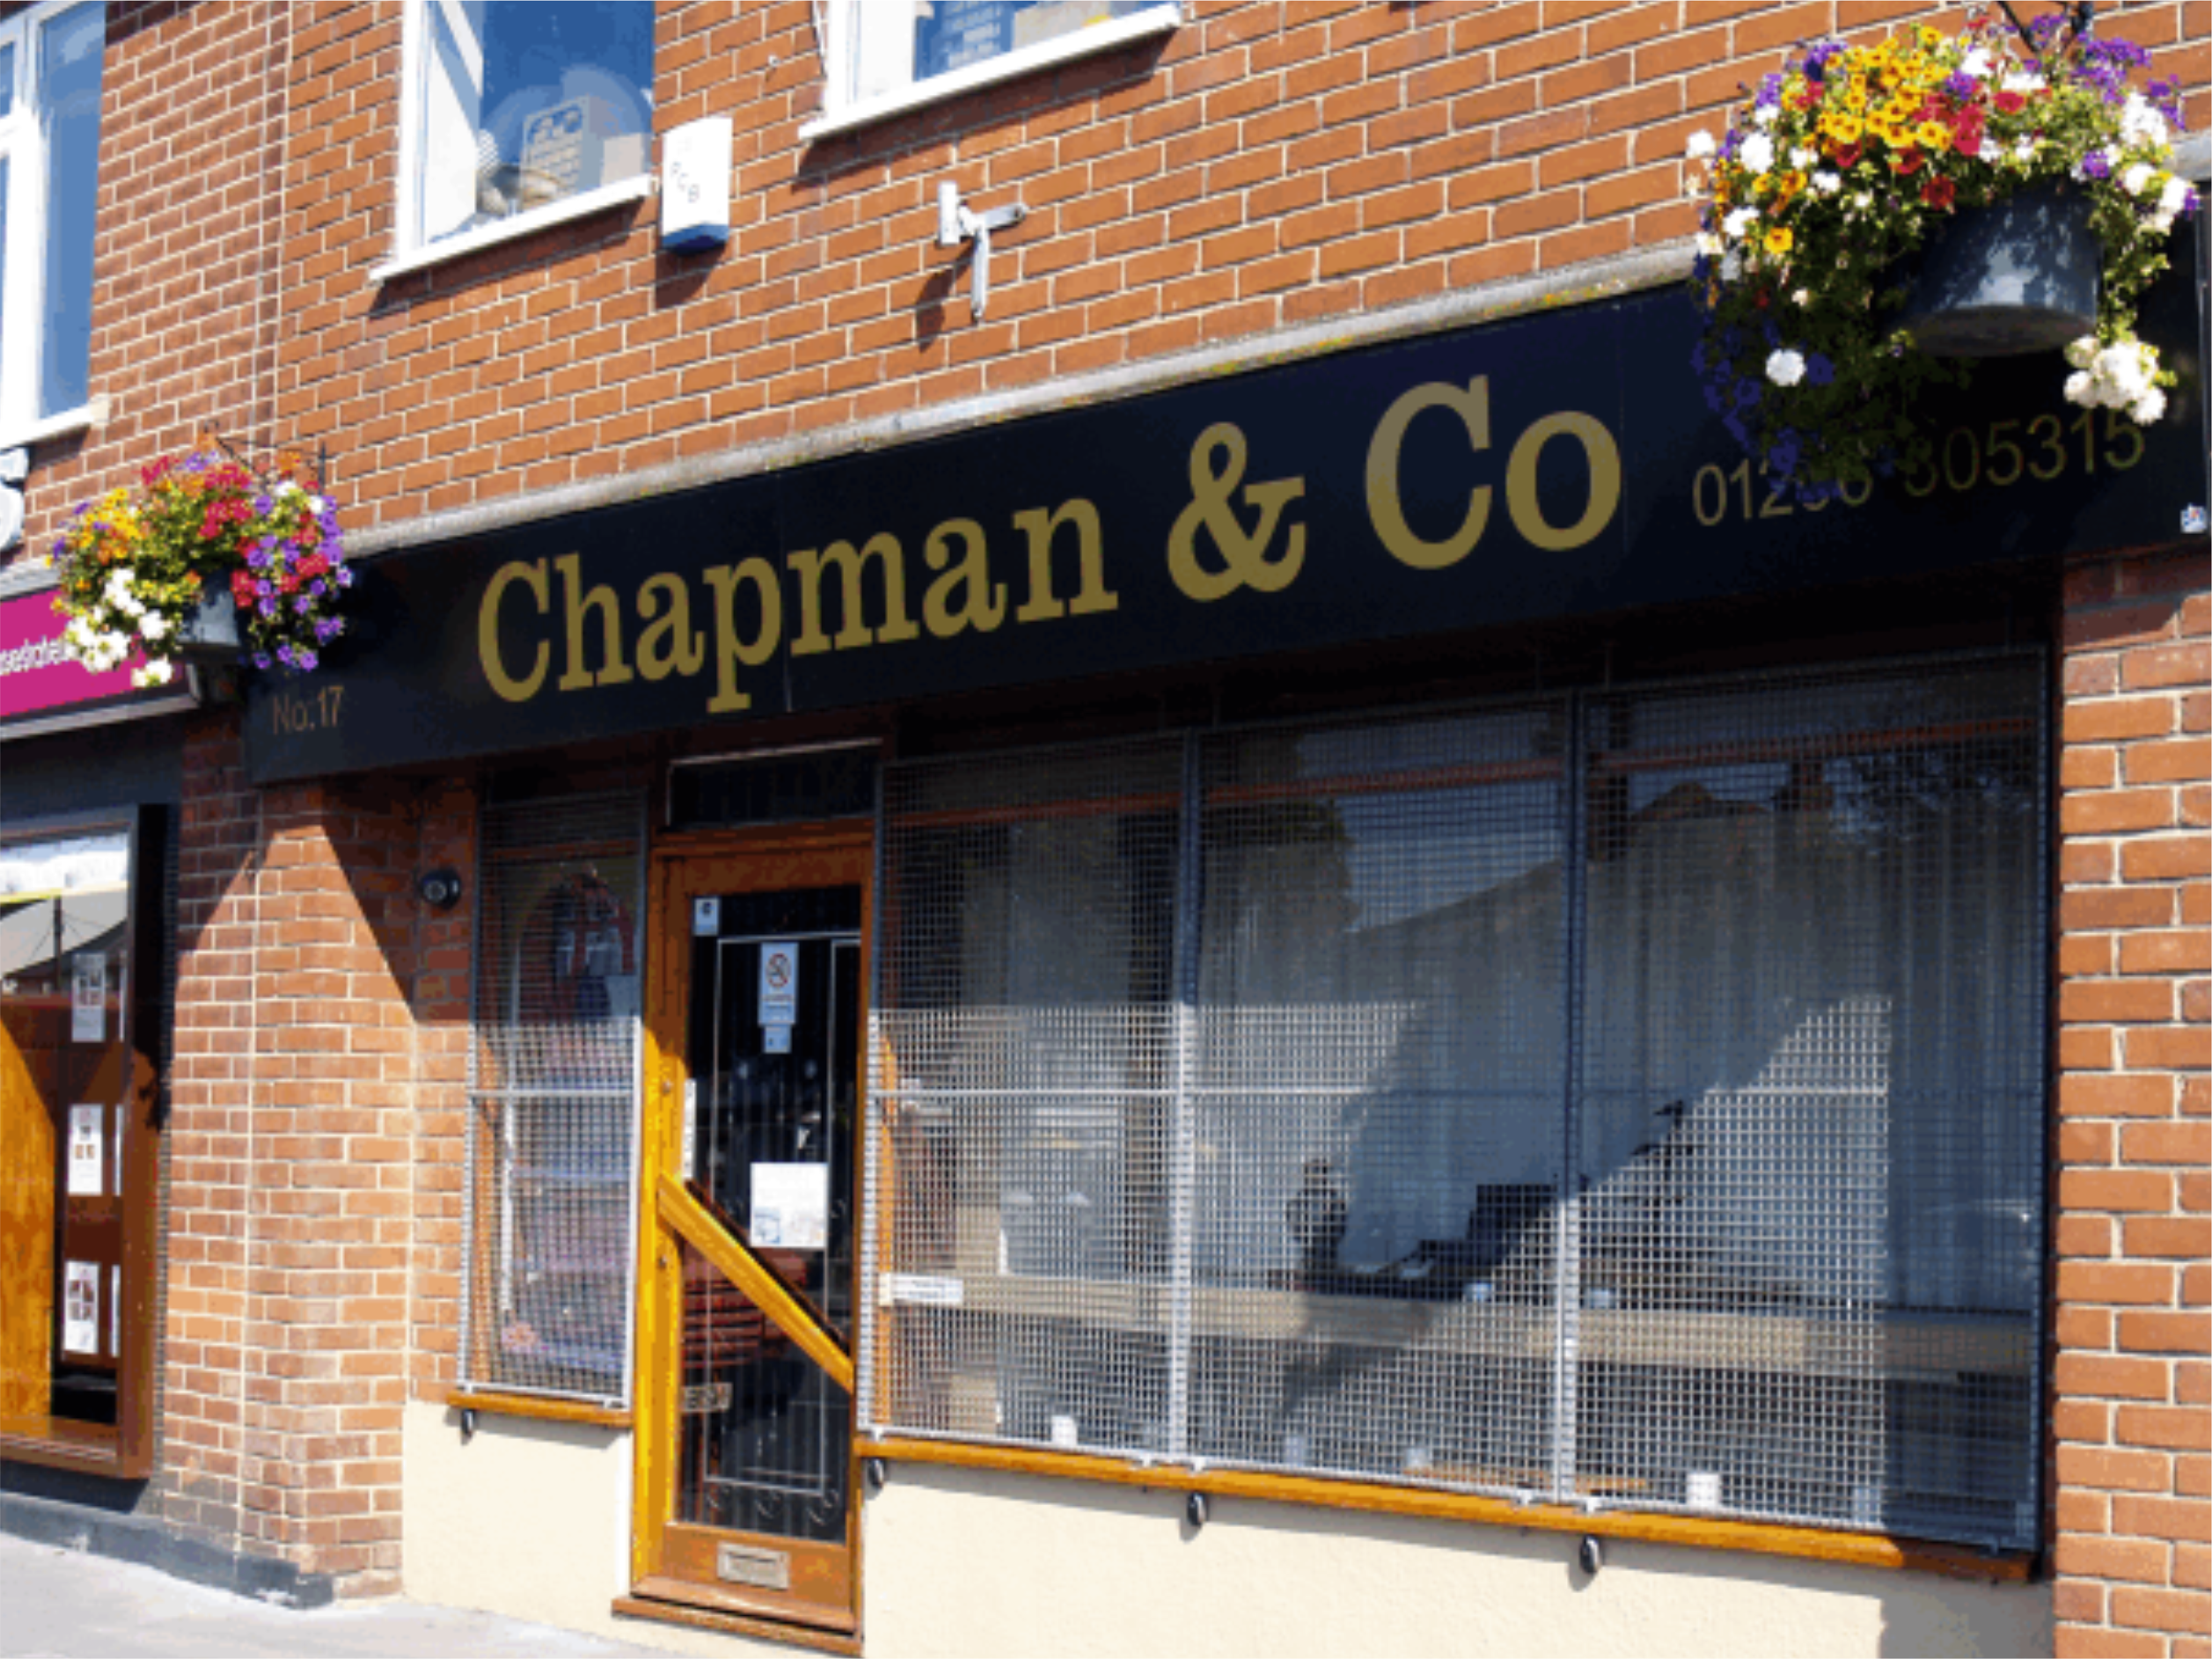 Link to detailed description page for shop sign for Chapman Jewellers in Brightlingsea